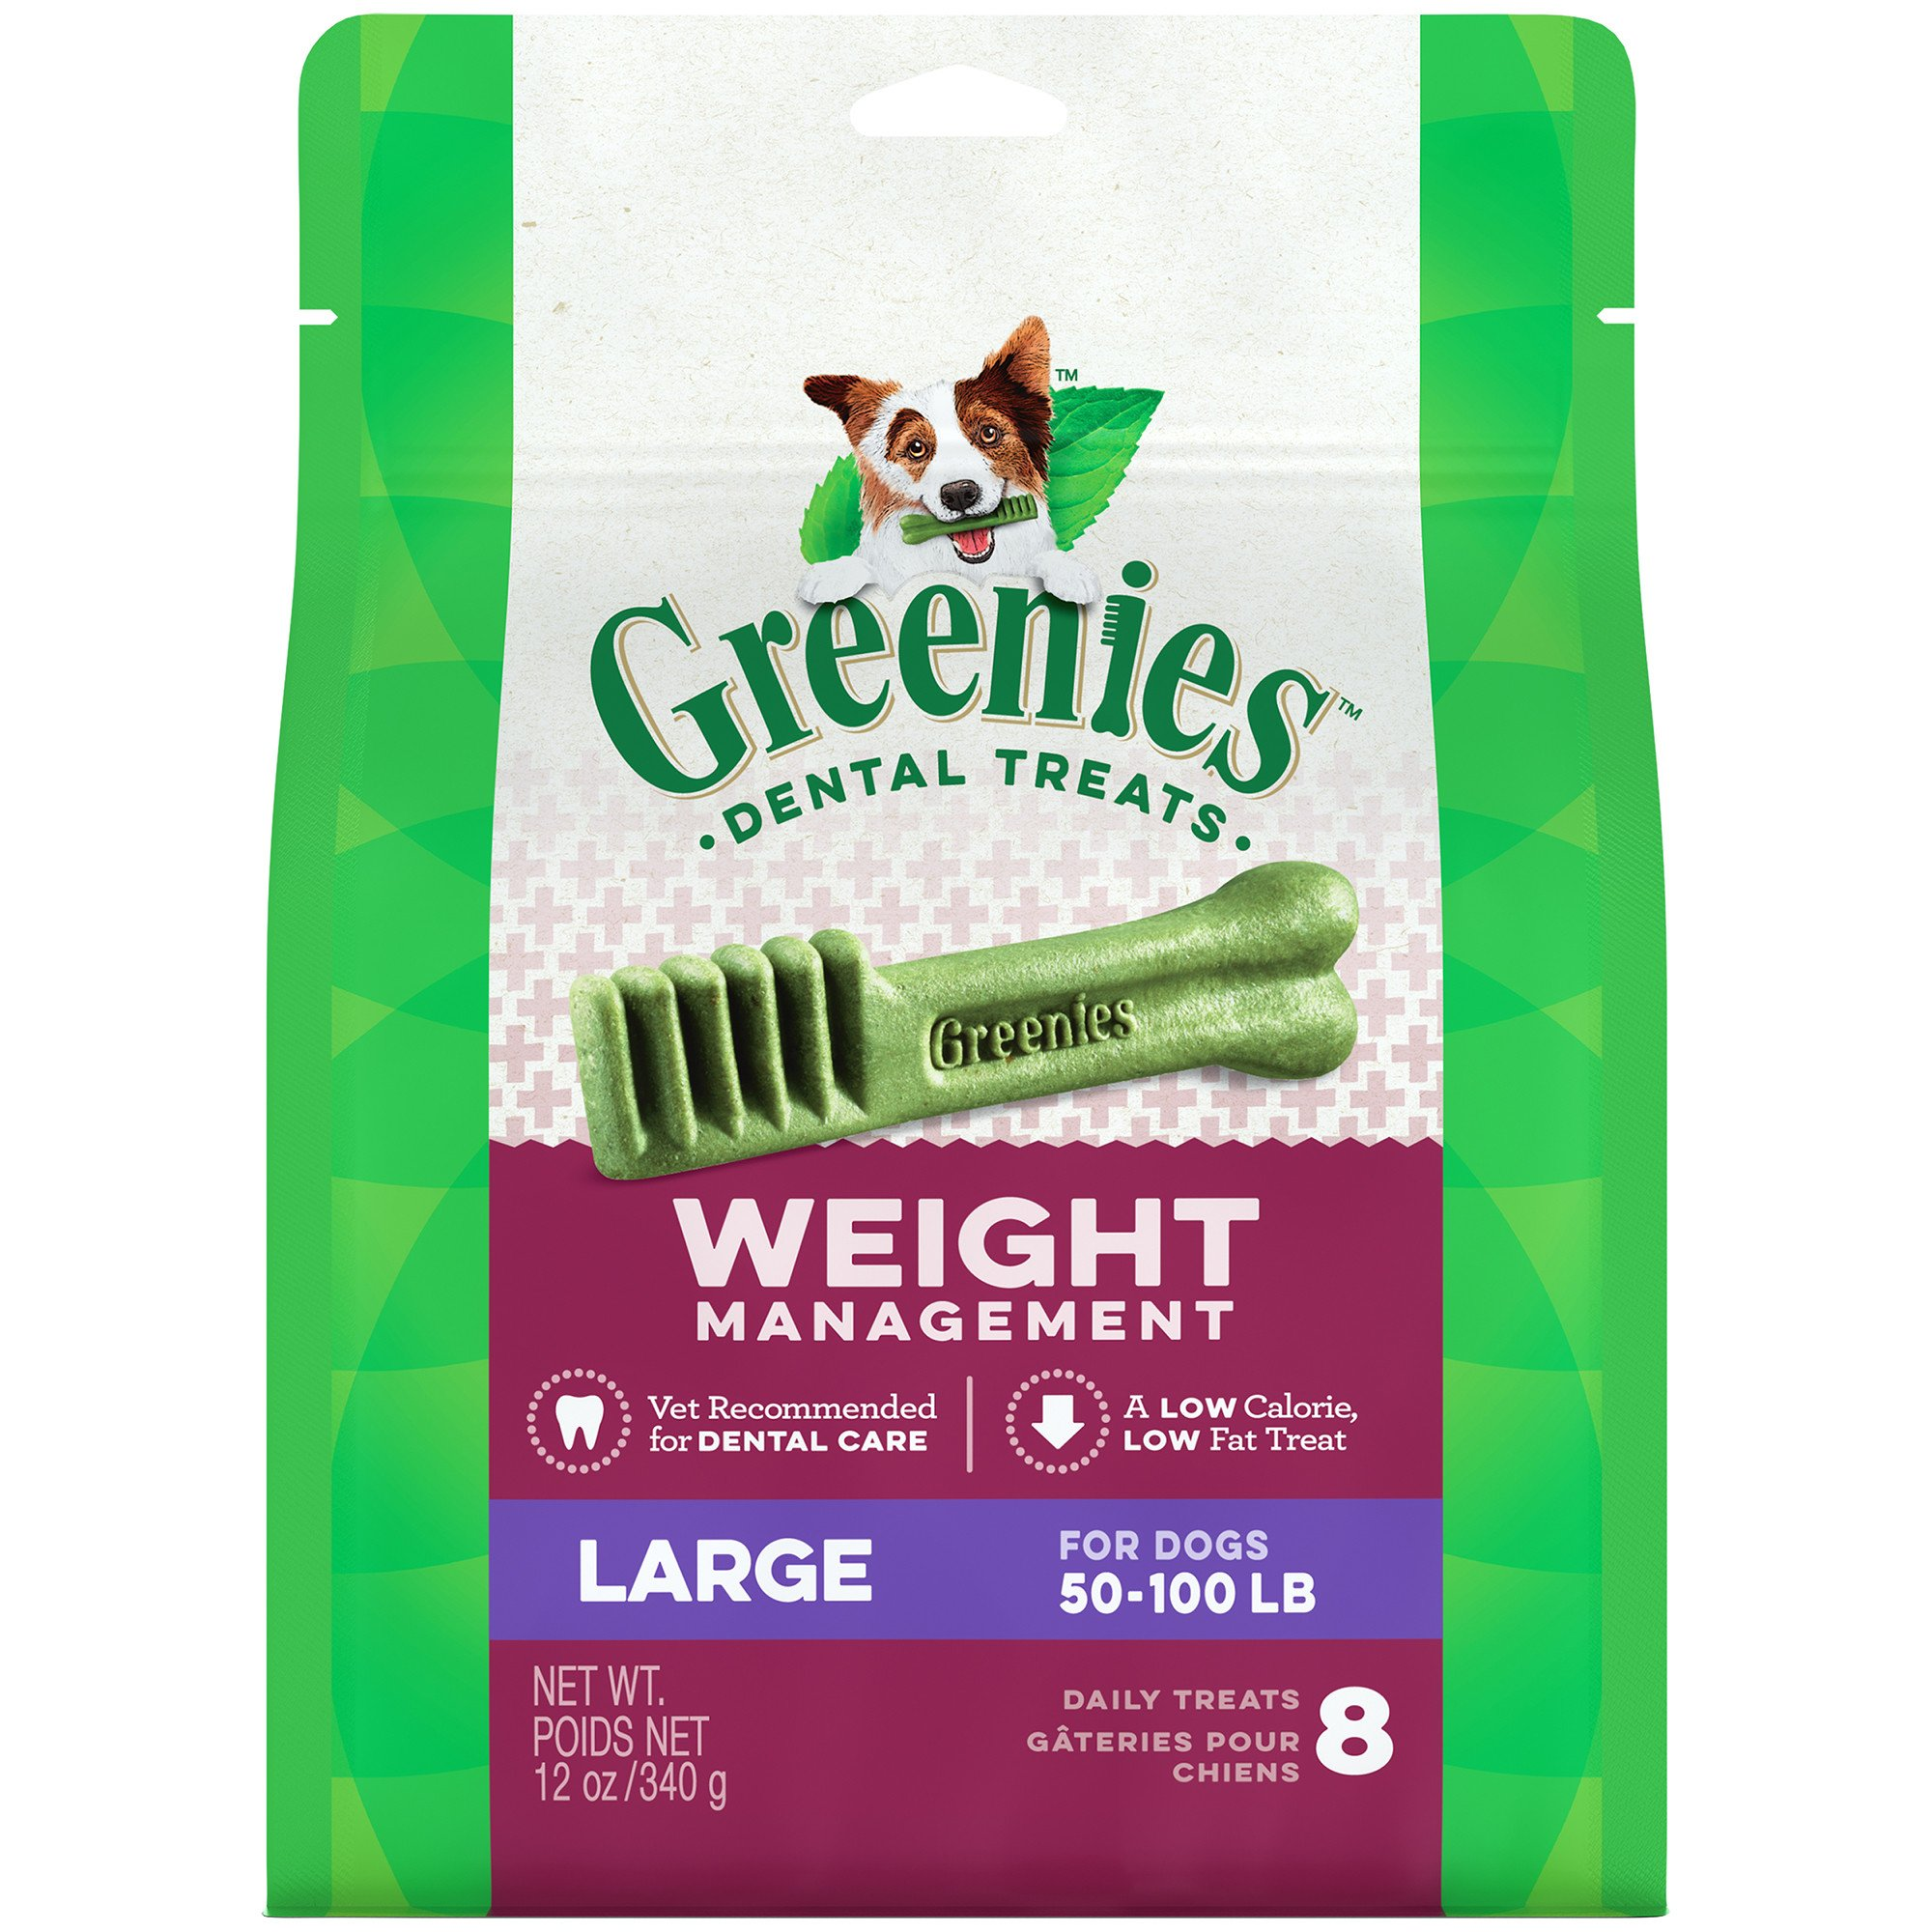 Greenies Weight Management Large Dental Dog Treats